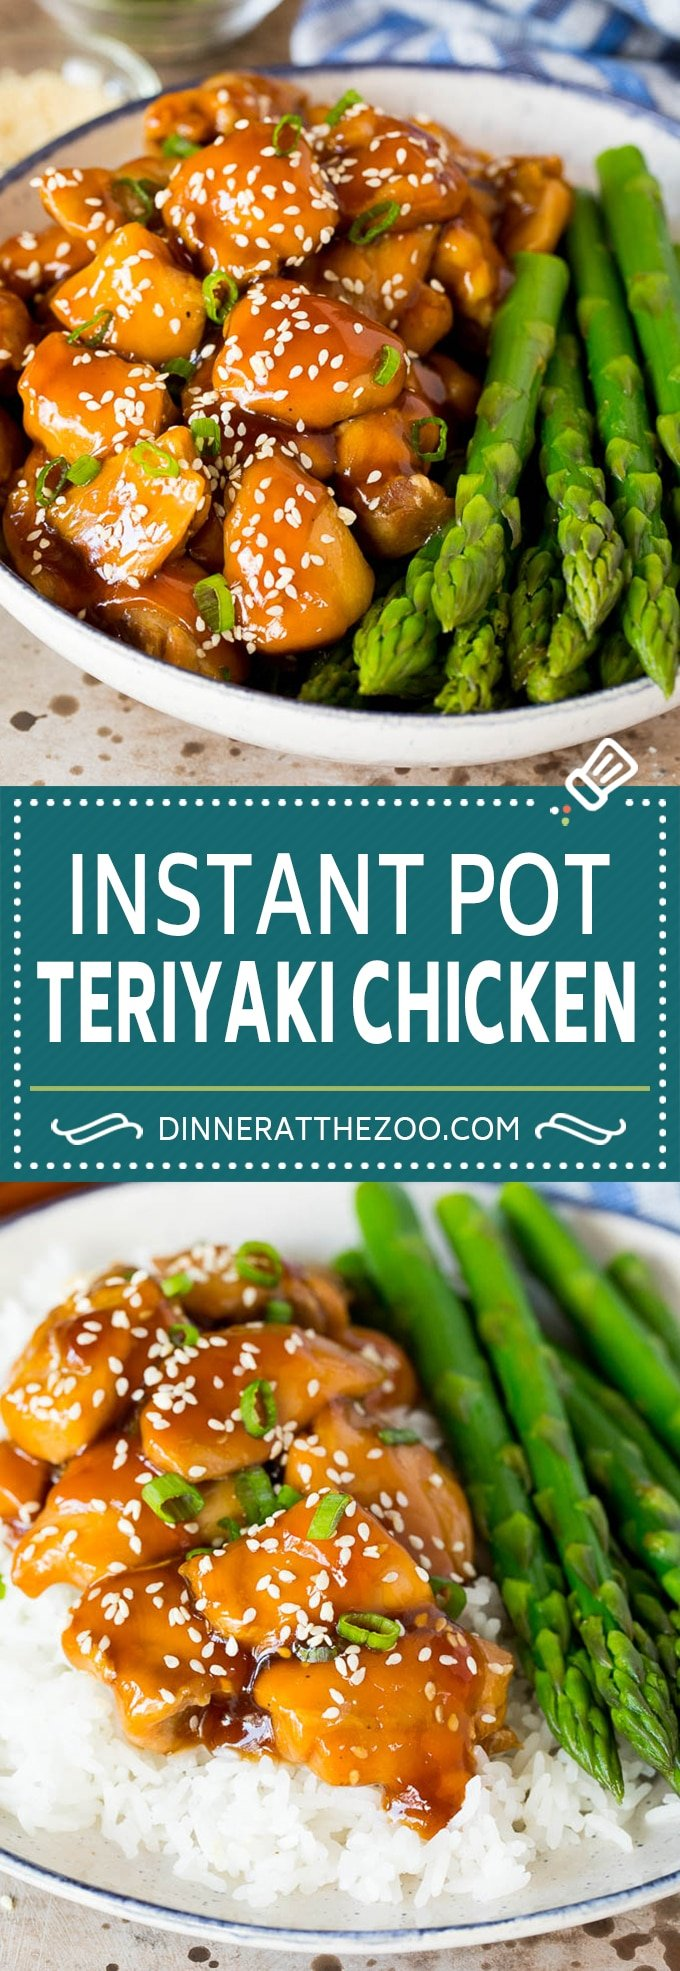 This Instant Pot teriyaki chicken is chicken thighs pressured cooked in a homemade sweet and savory teriyaki sauce.